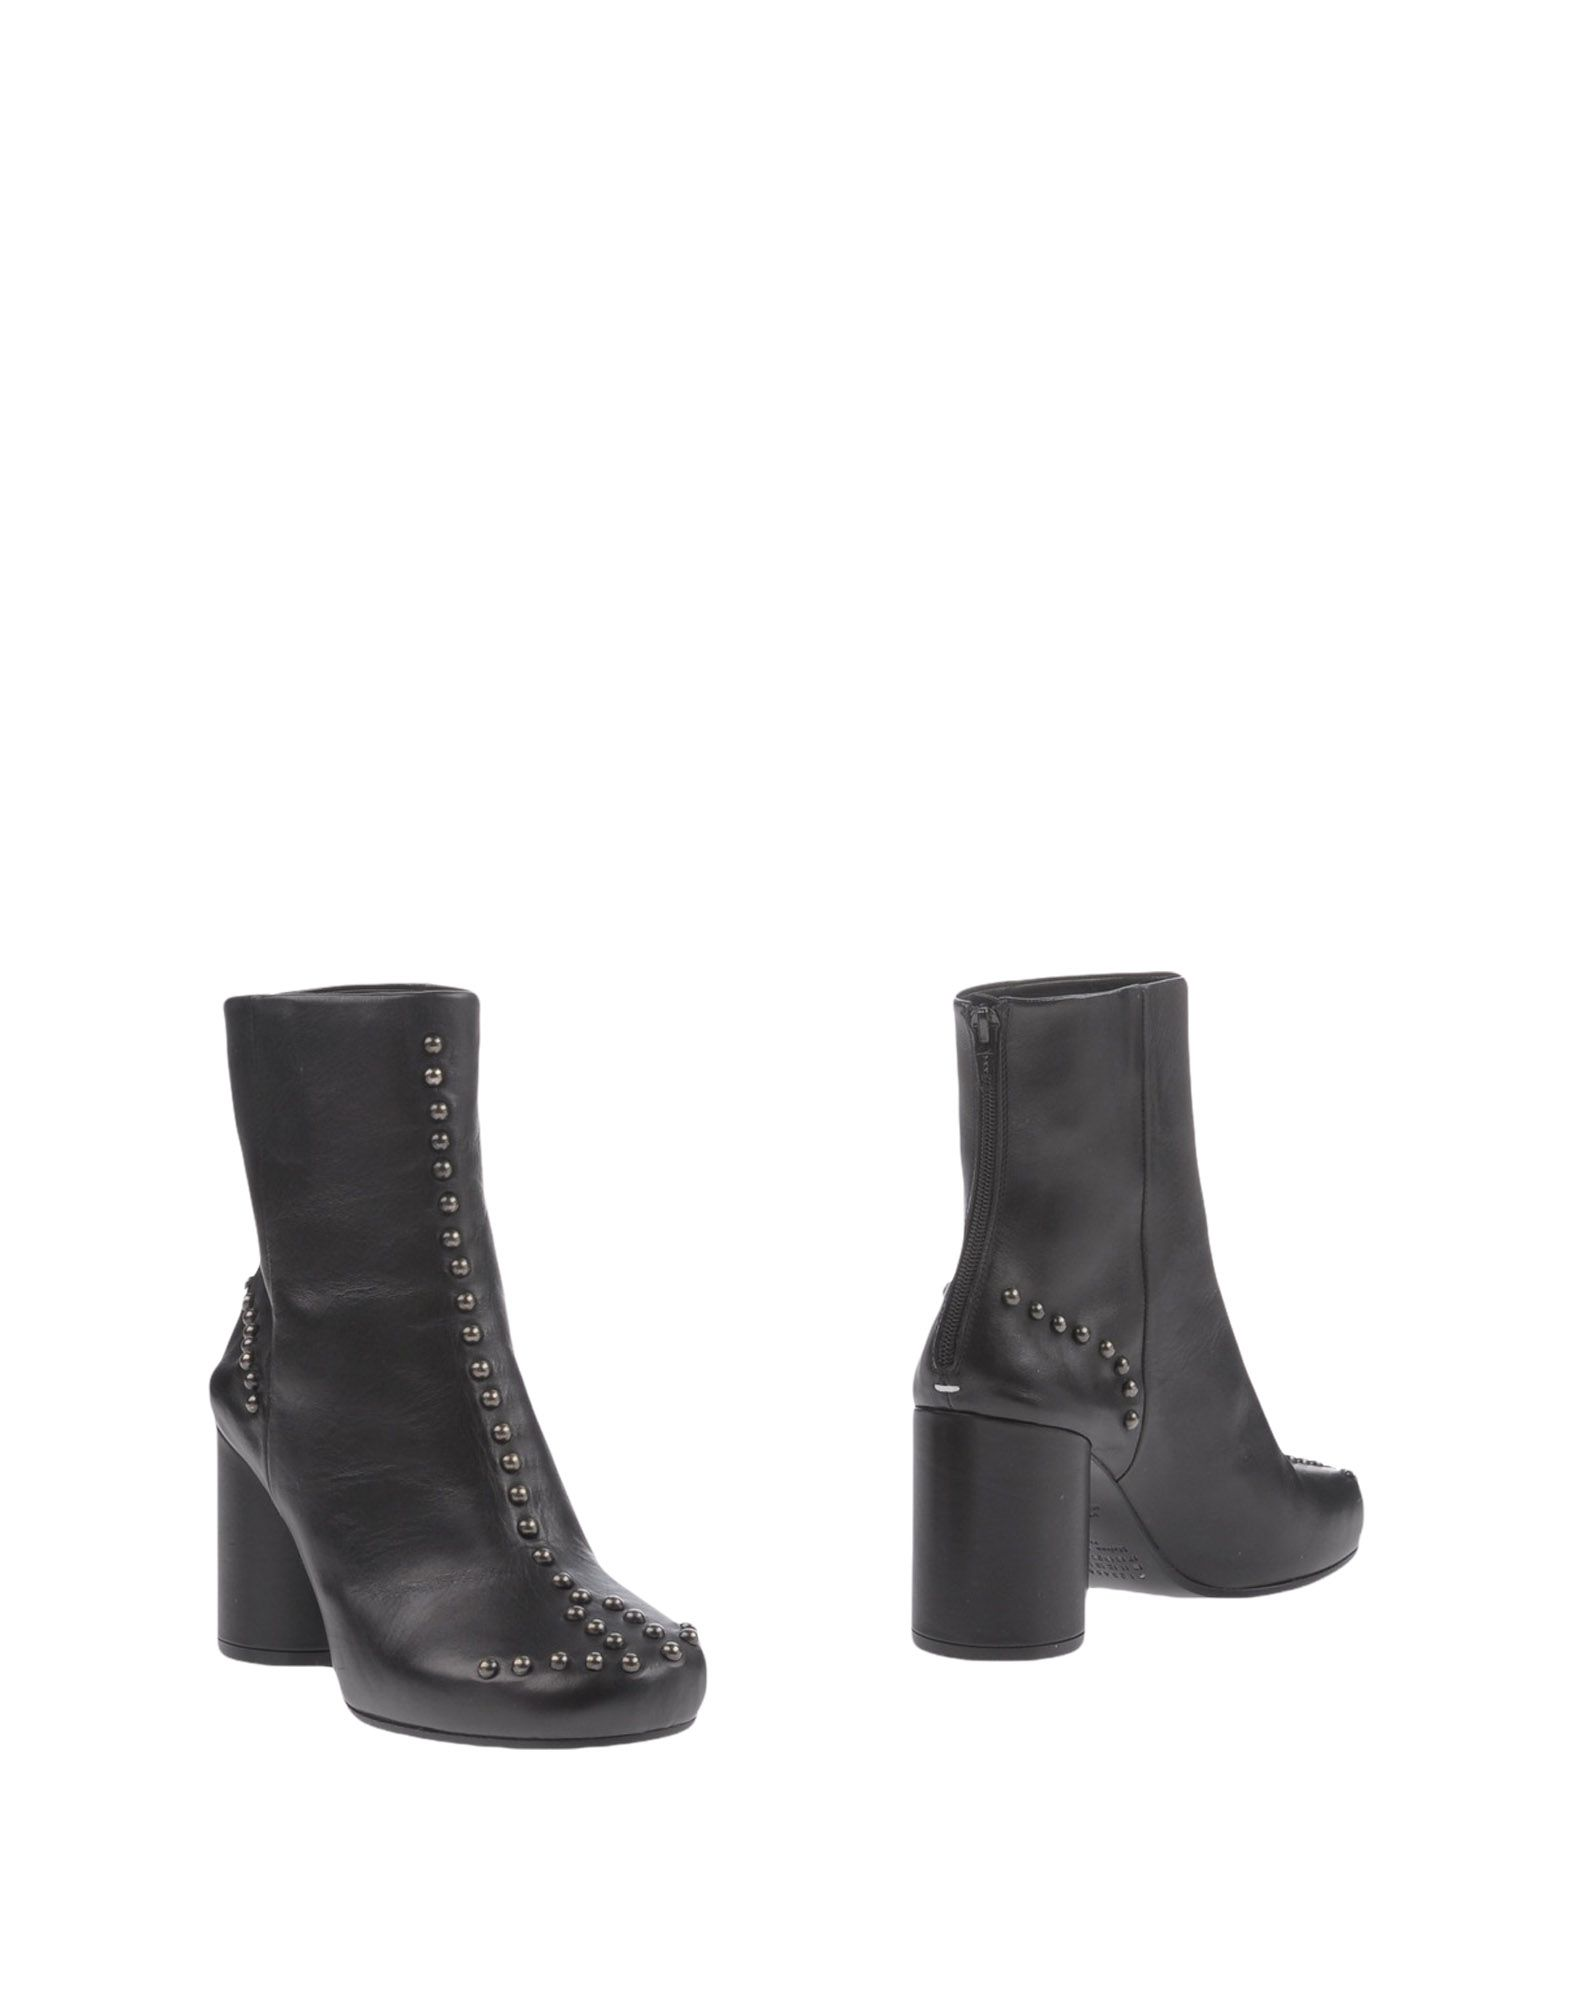 f3427d5dd47 Women s Shoes Sale - YOOX United States